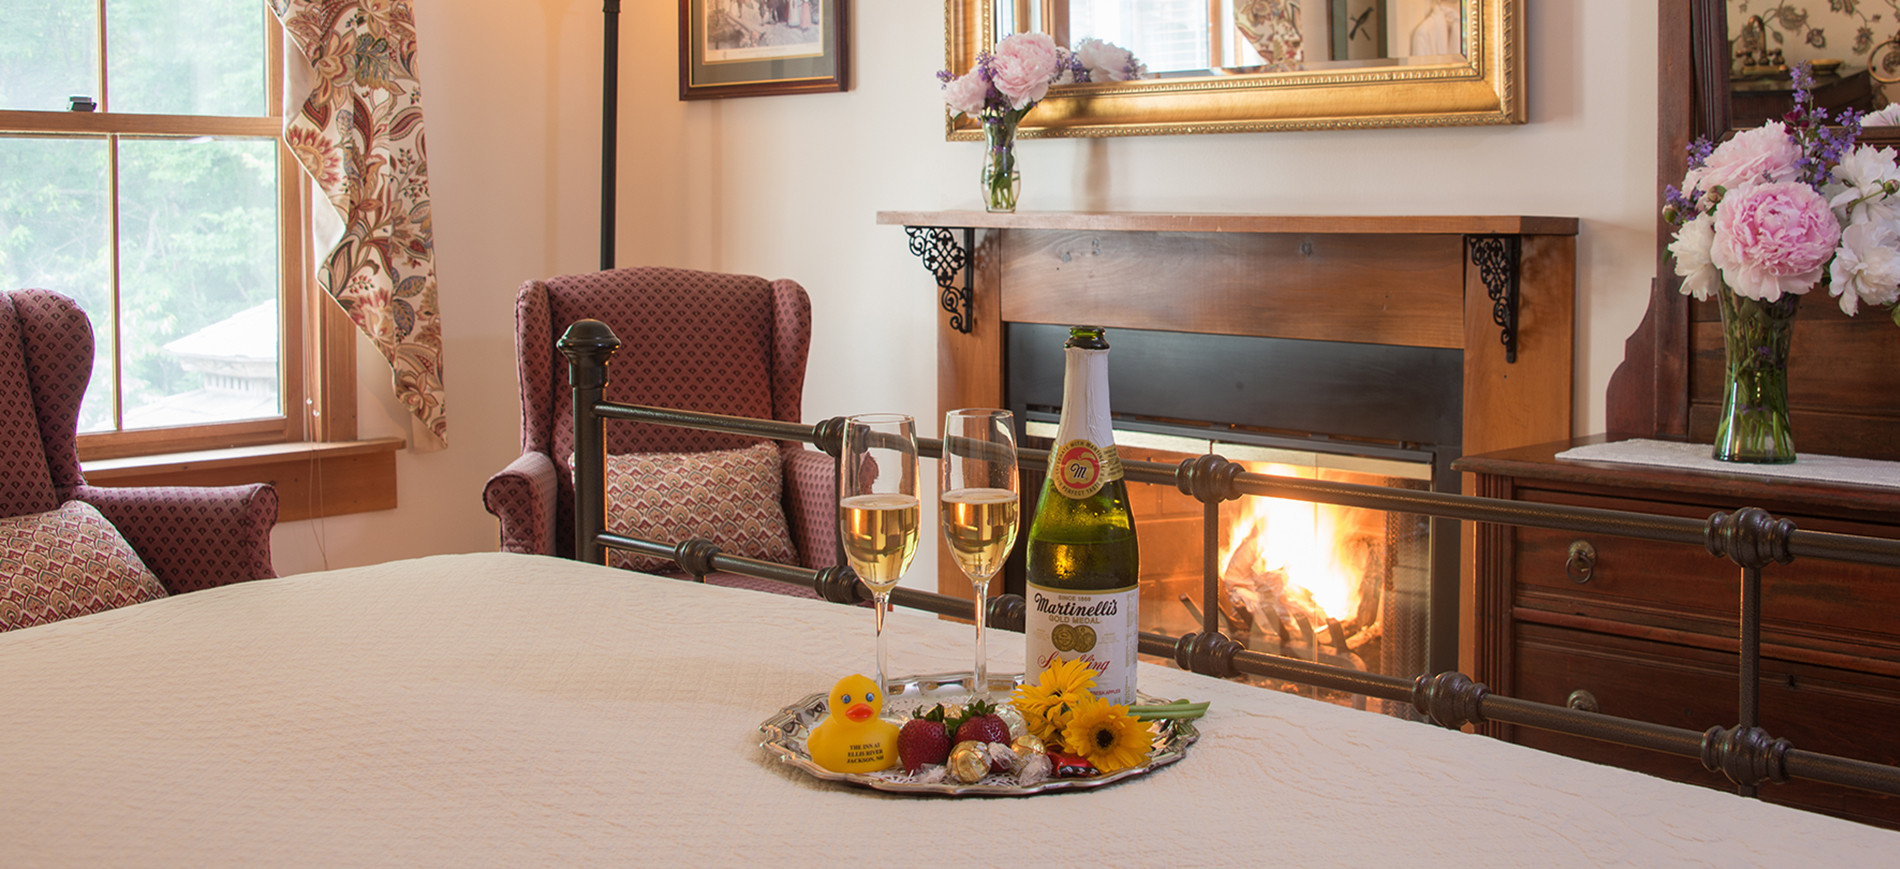 Silver tray with cider glasses & bottle, rubber duck, chocolates on king bed with chairs & fireplace behind